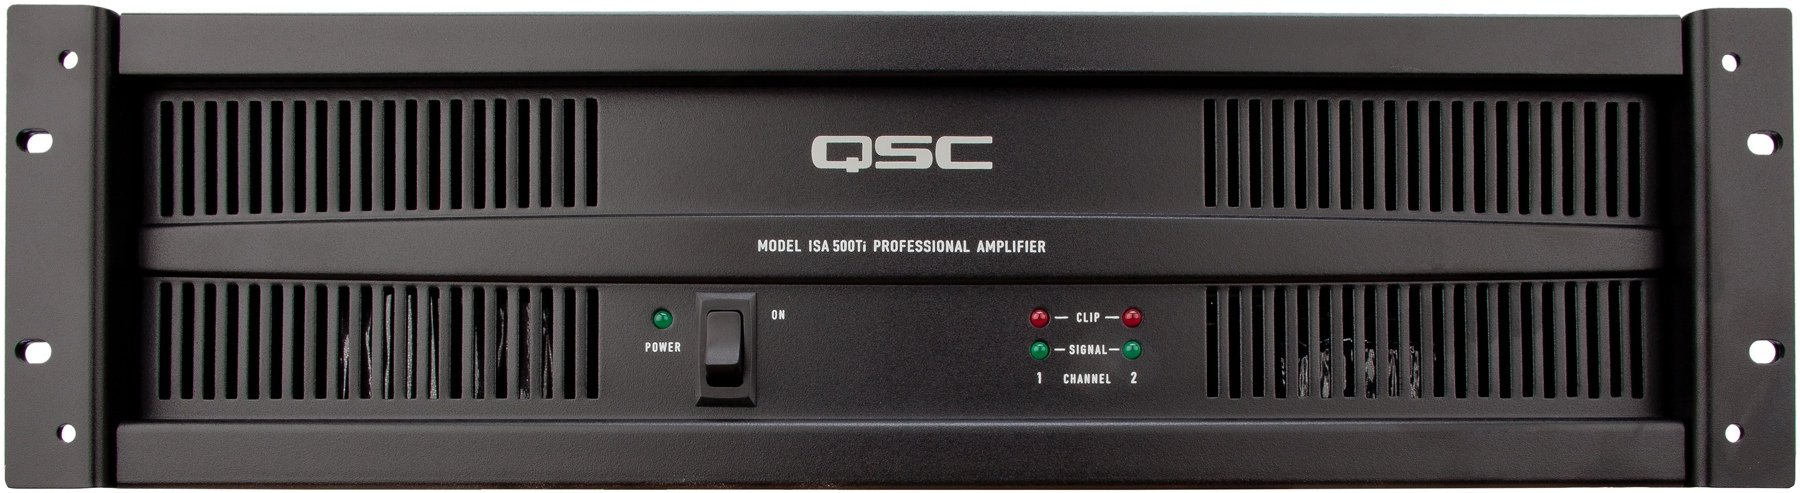 Qsc Isa500ti Power Amplifier Sweetwater 58 W Audio Image 1